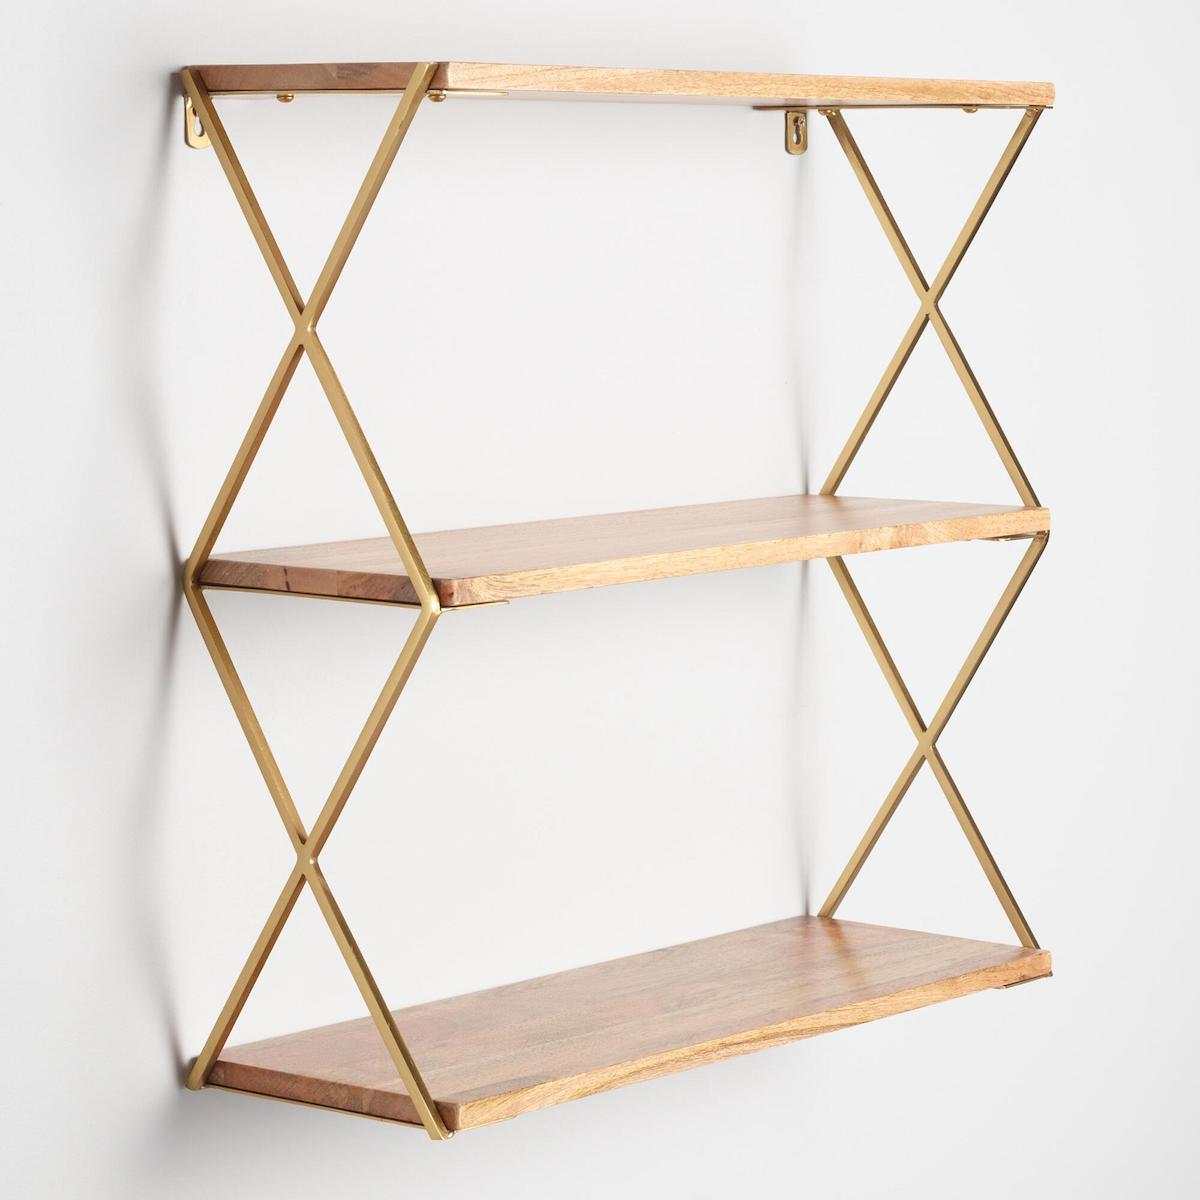 Gold and Wood Over the Toilet Shelving